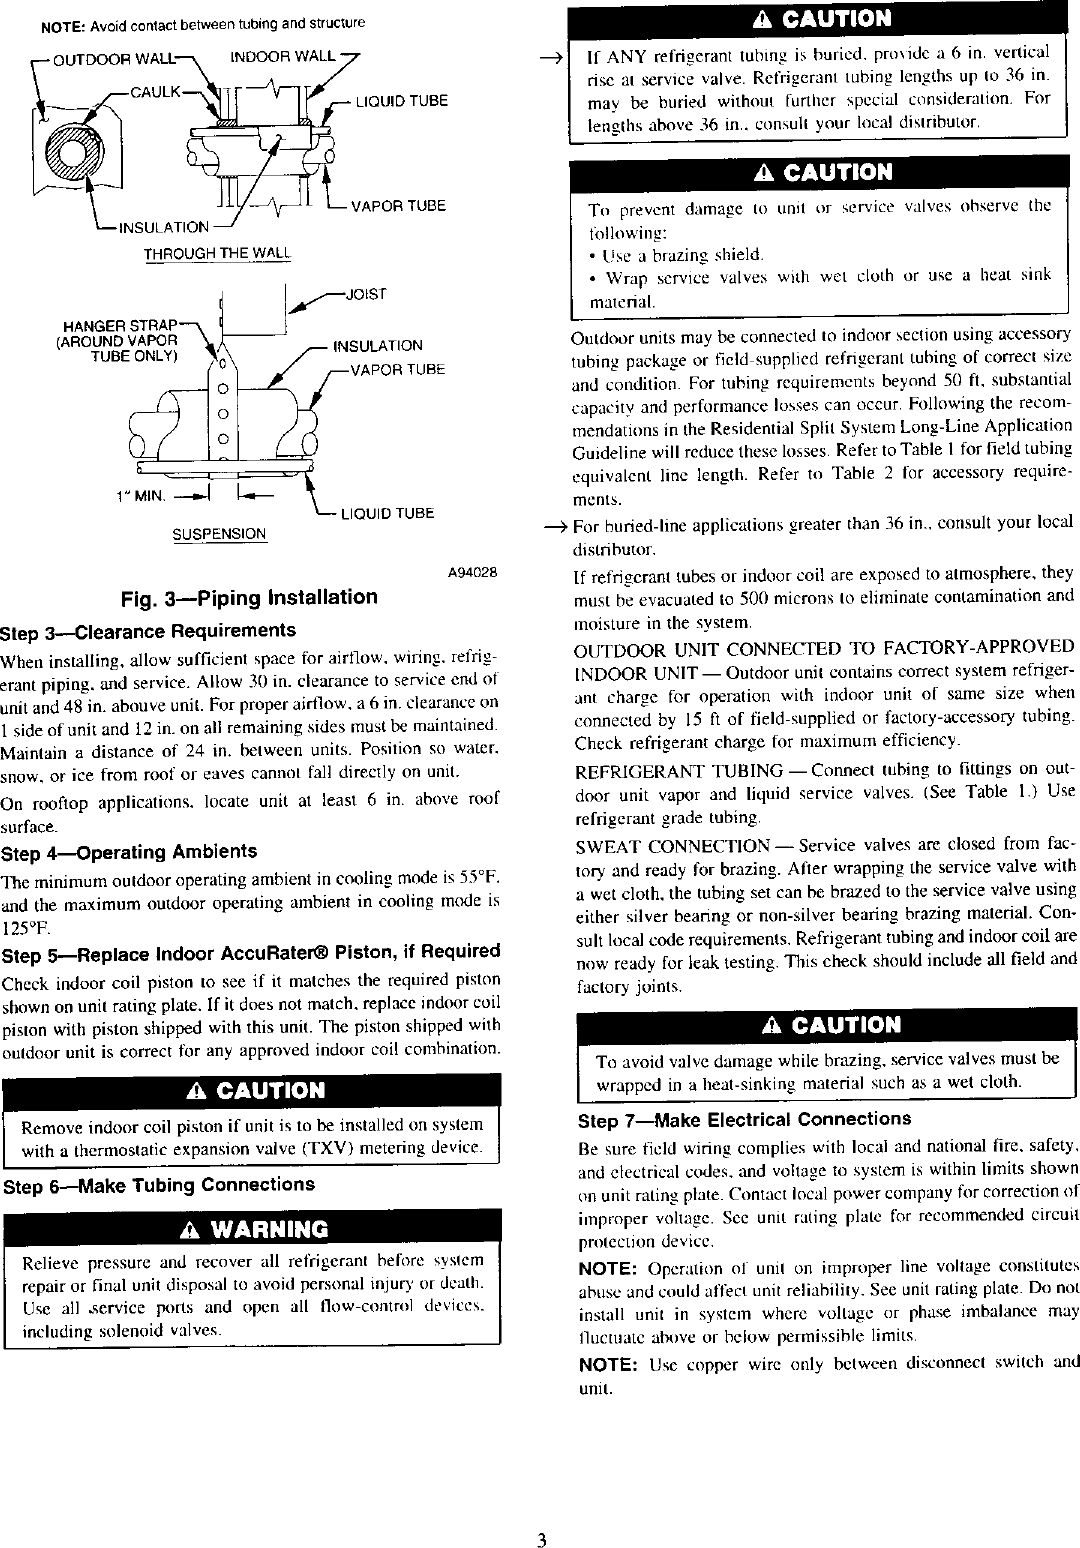 Ac Condenser Disconnect Manual Guide